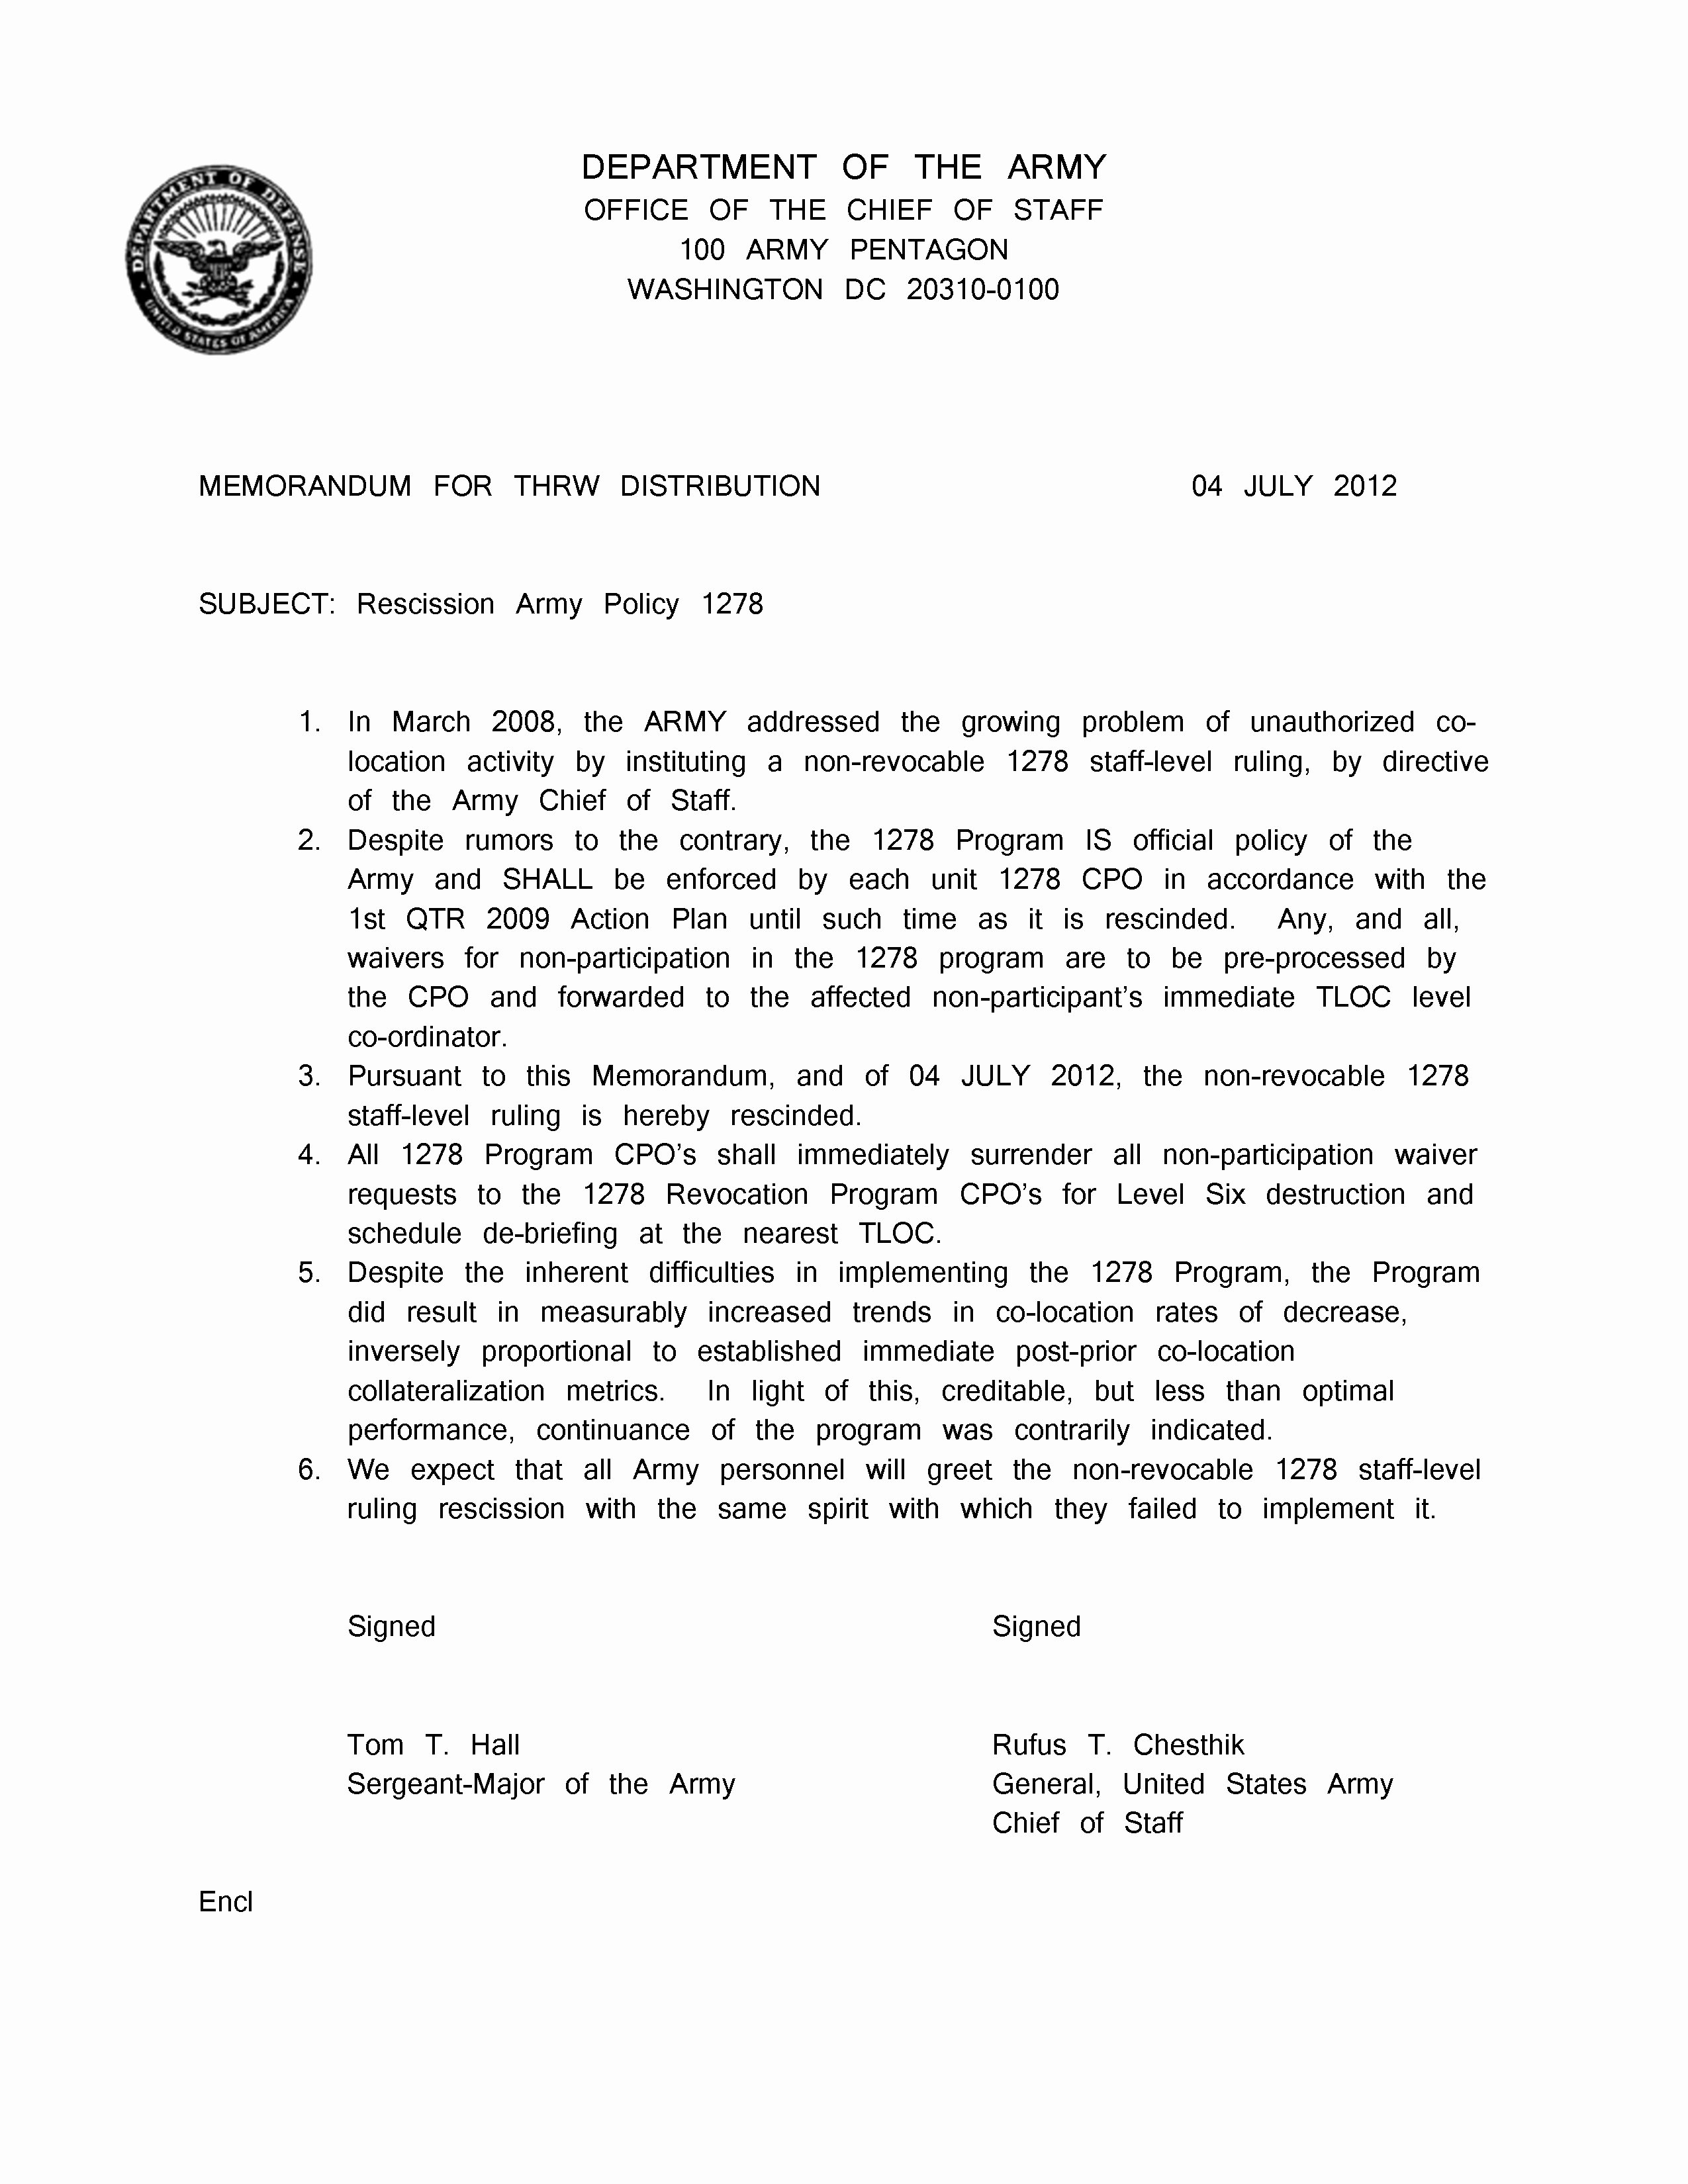 Best S Of Army Memo Template Army Memorandum Memo